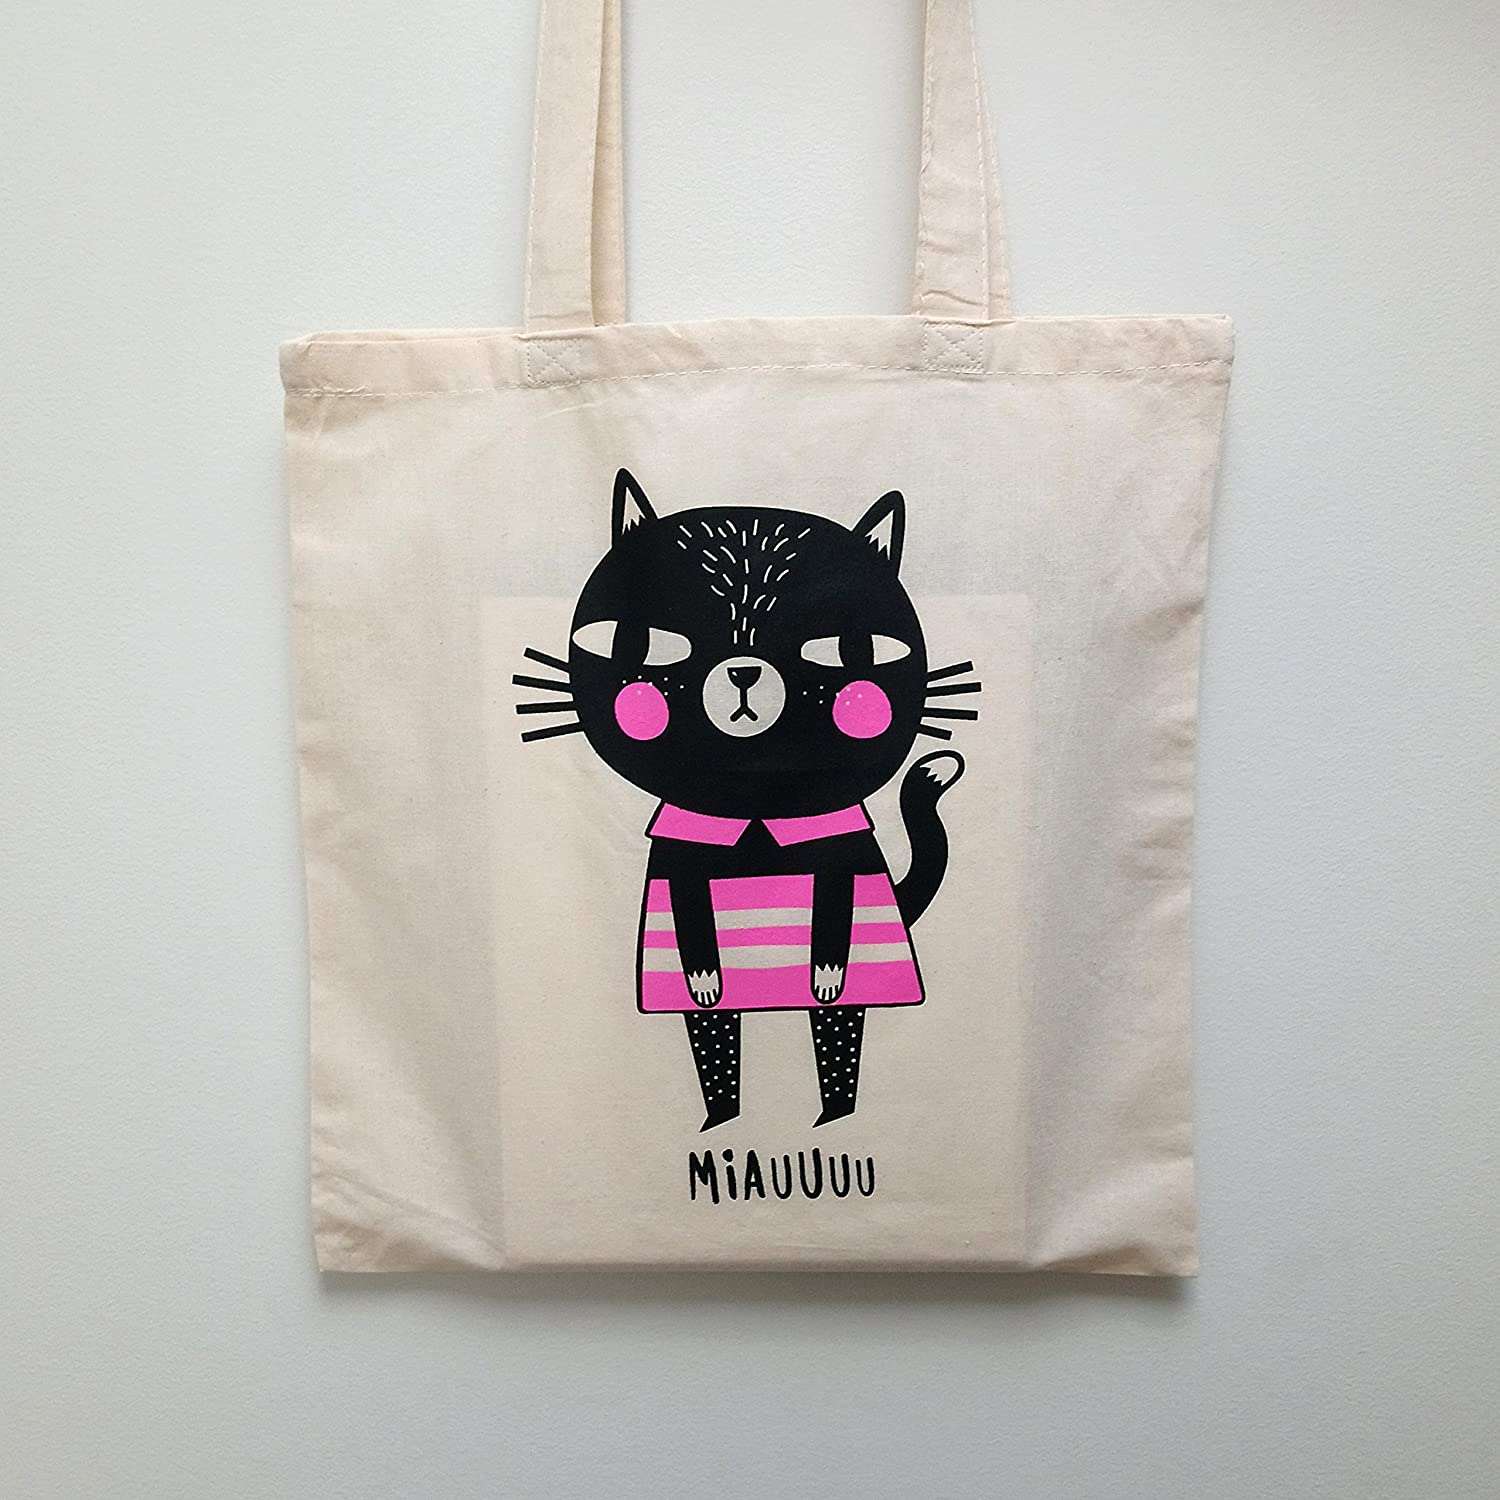 MIAUUUU CAT Tote // Screen printed Cat Tote Bag // Cat Screen Print // Shopping Bag